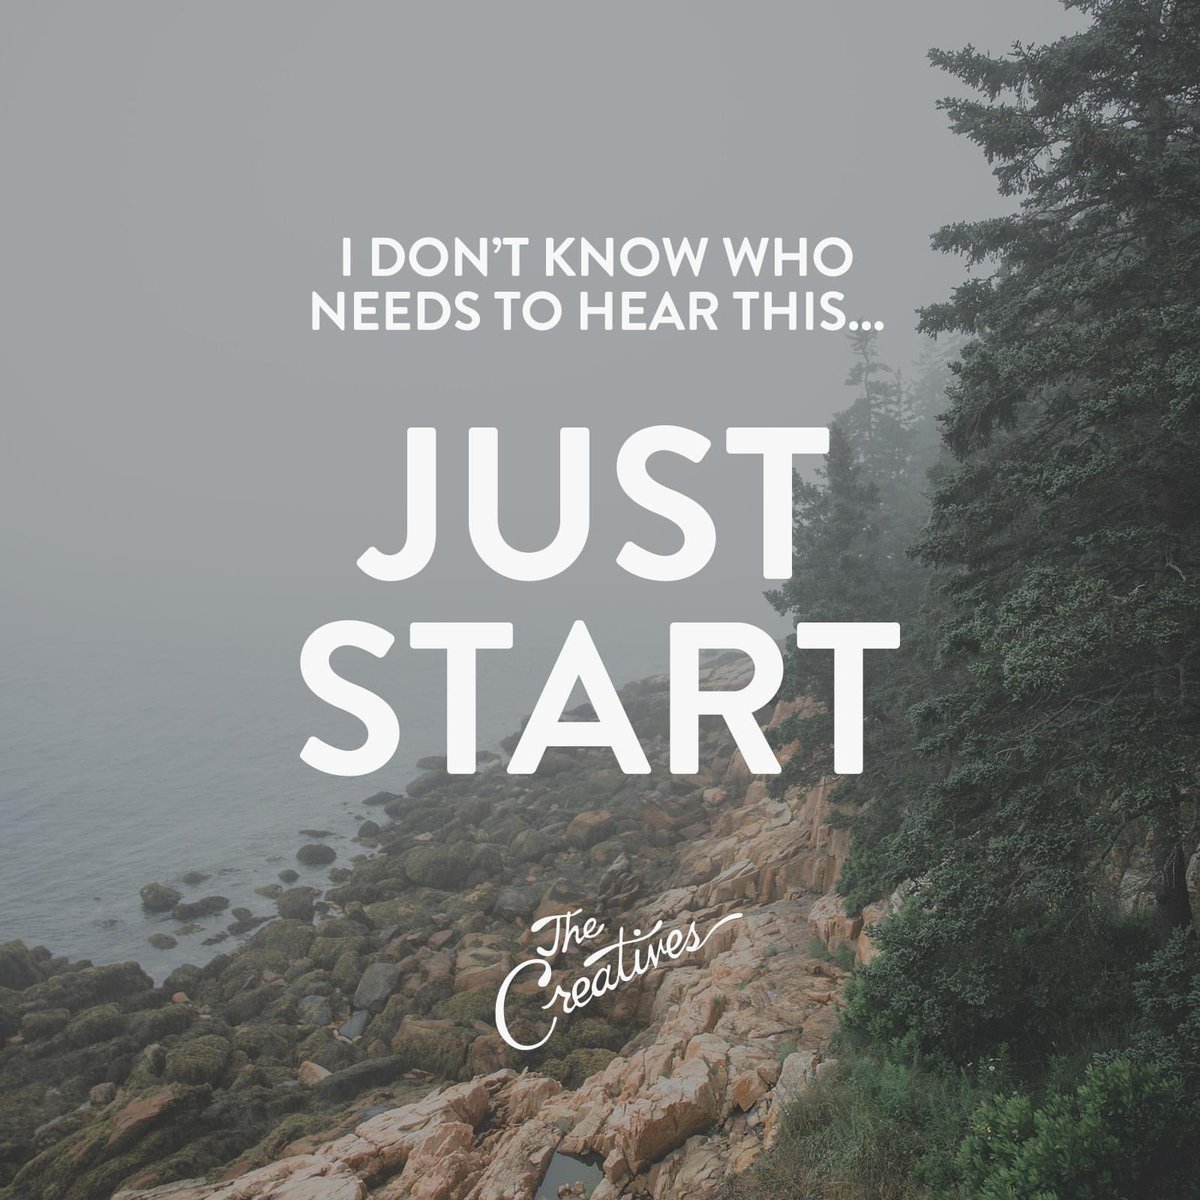 I don't know who needs to hear this... just start. #creativity #motivation https://t.co/ncSAgO0rlq